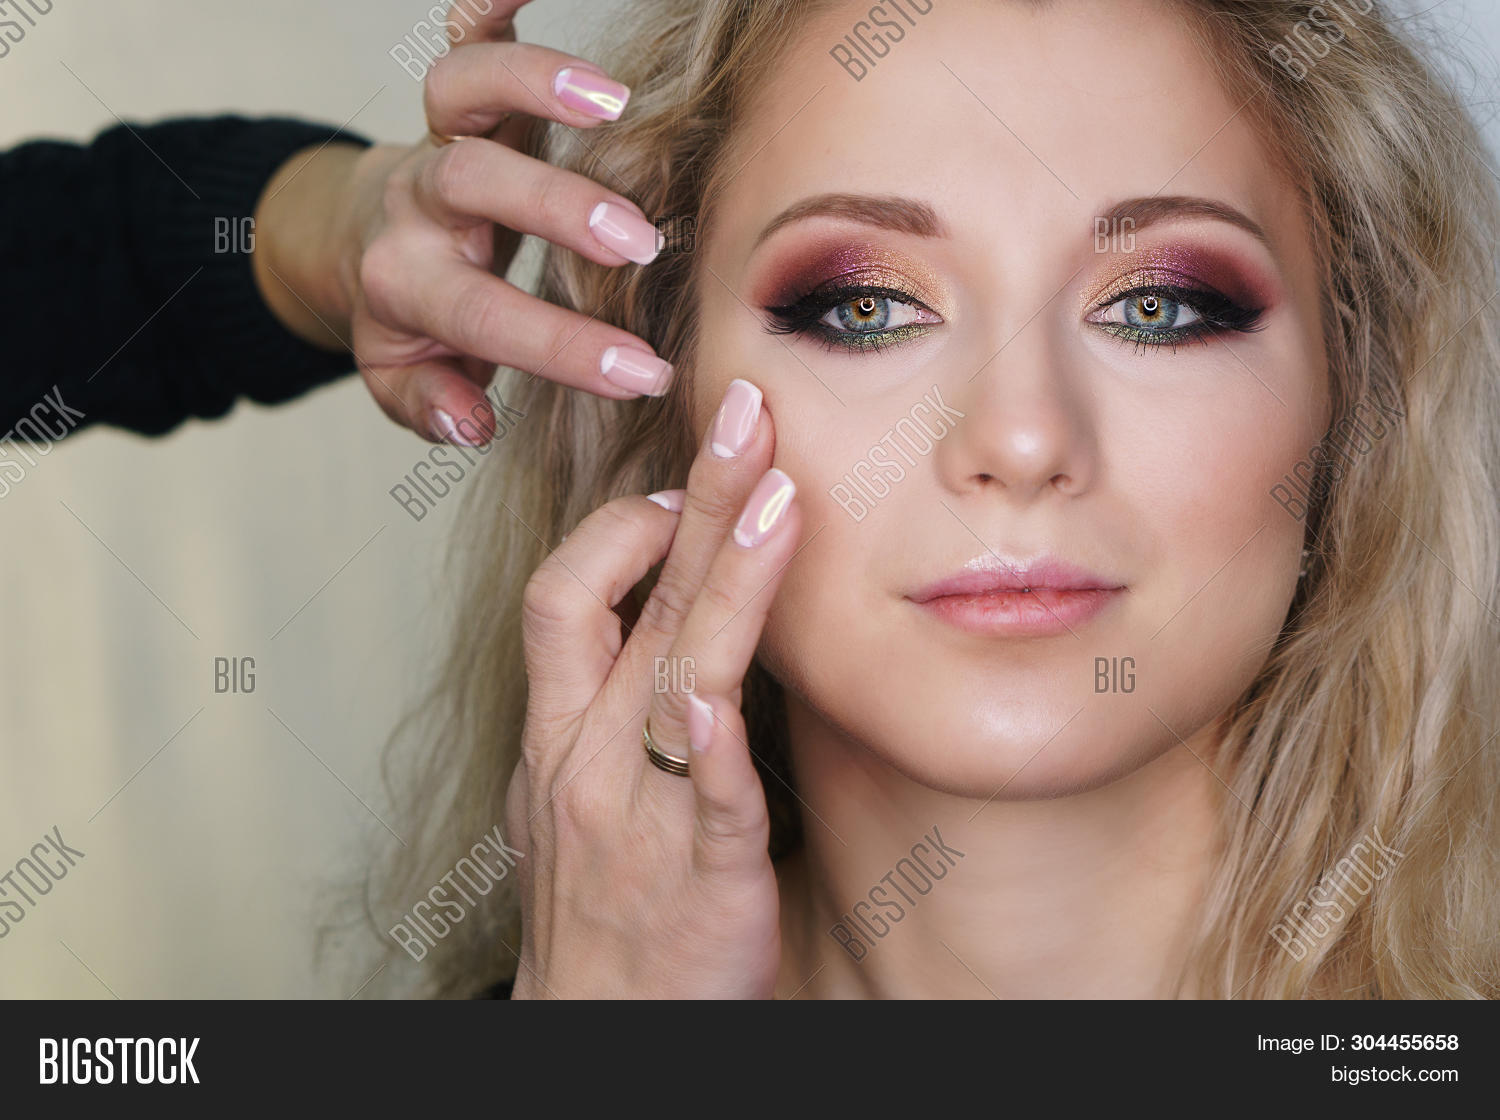 Make-up Artist Working In Make-up Studio, Applying Makeup On Face Of Female Clients. Makeup Artist E